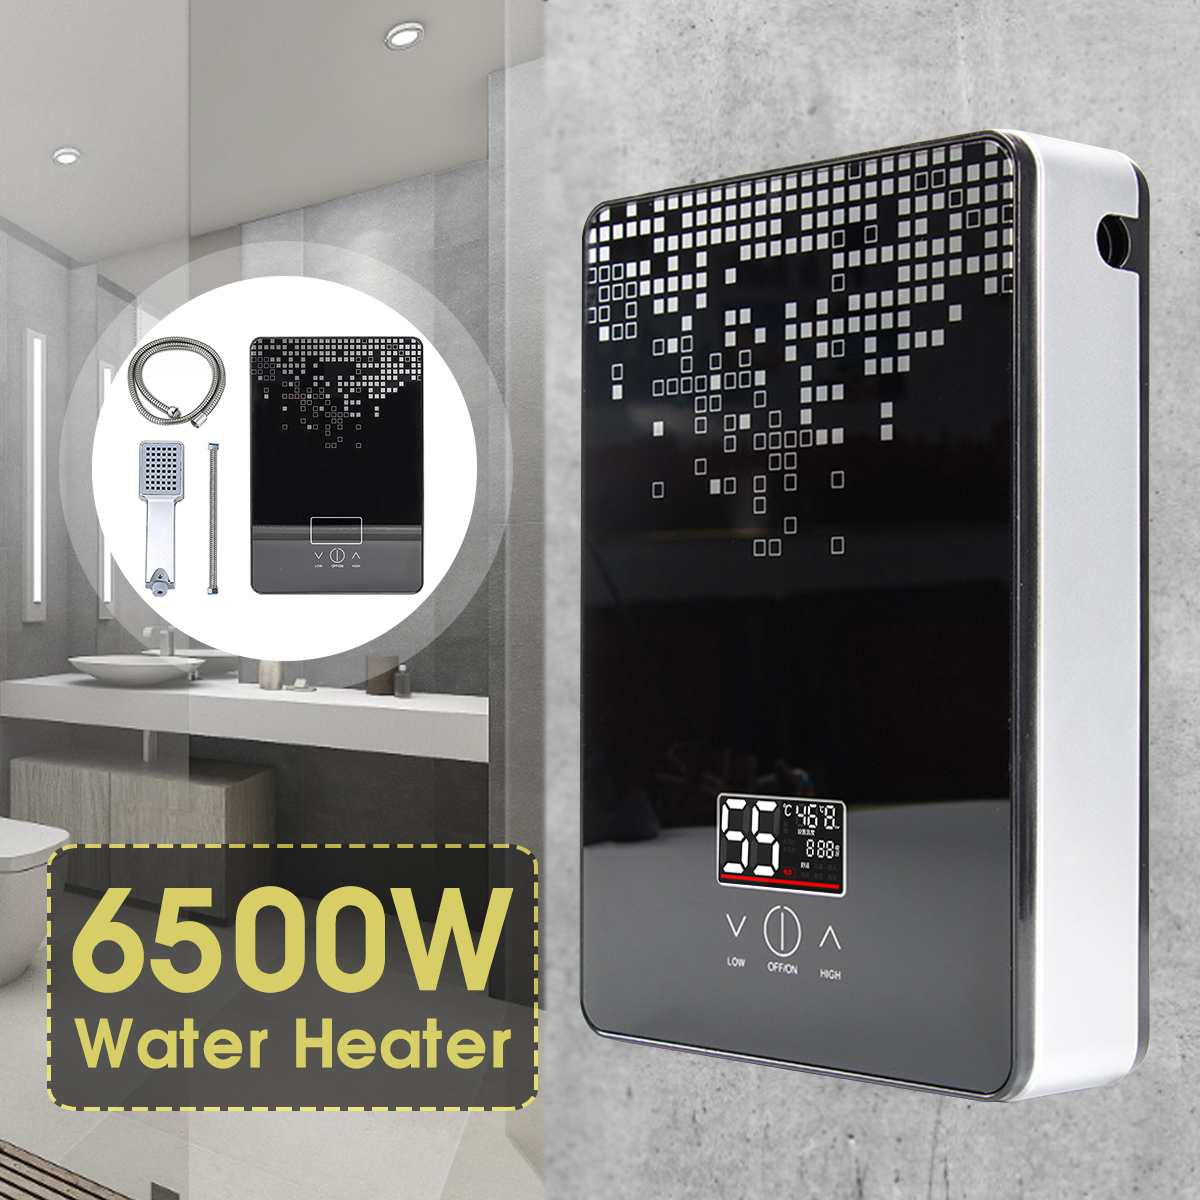 Electric Hot Water Heater 6500W 220V Tankless Instant Boiler Bathroom Shower Set Thermostat Safe Intelligent Automatically fauce image